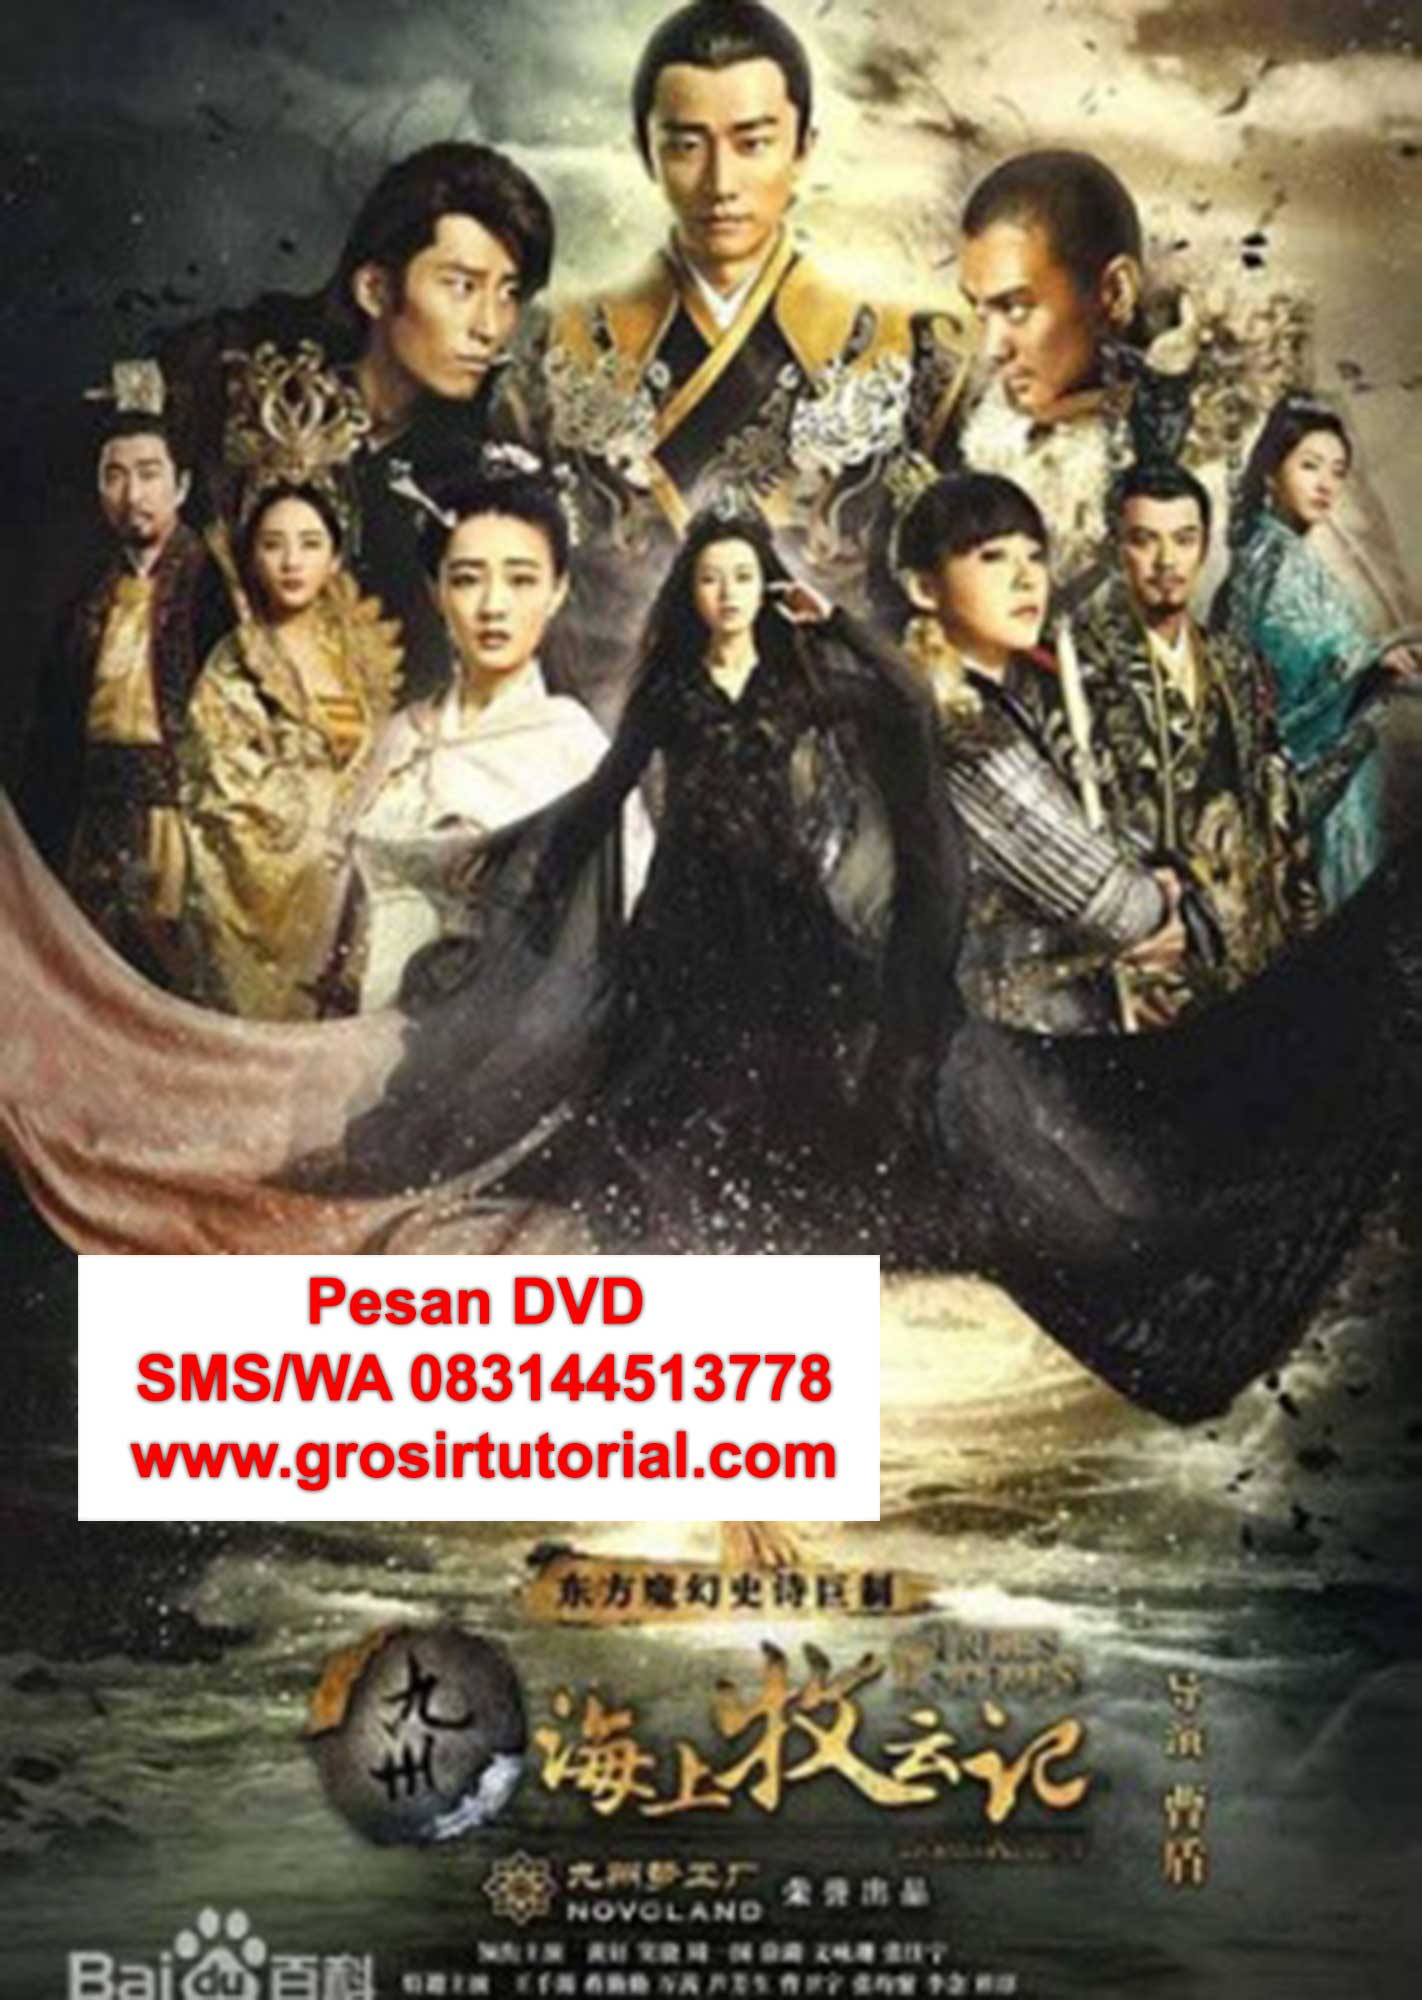 jual-dvd-mandarin-Tribe-and-Empires-The-Strom-of-Prohecy